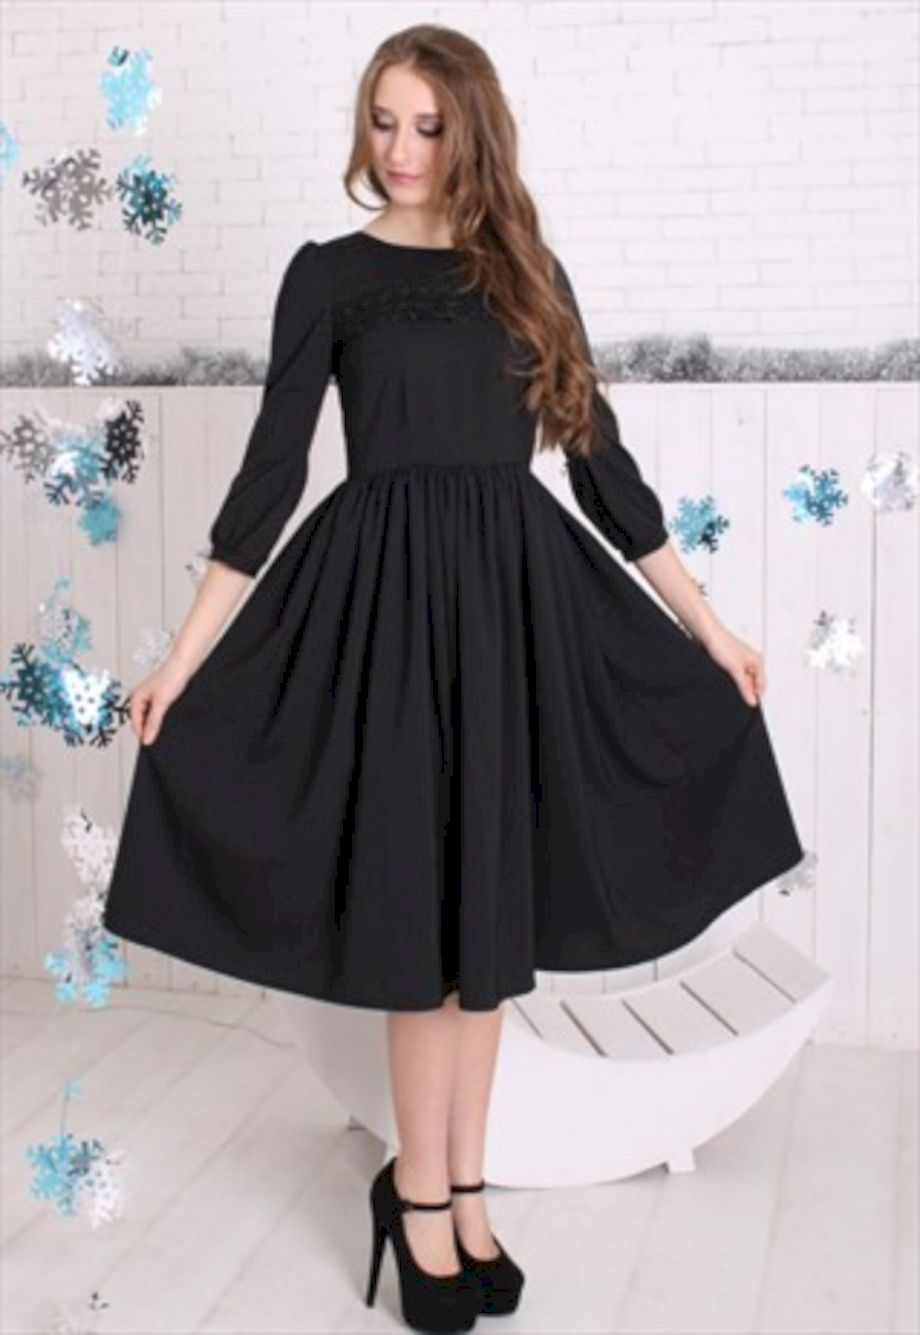 Formal midi dresses outfits 53